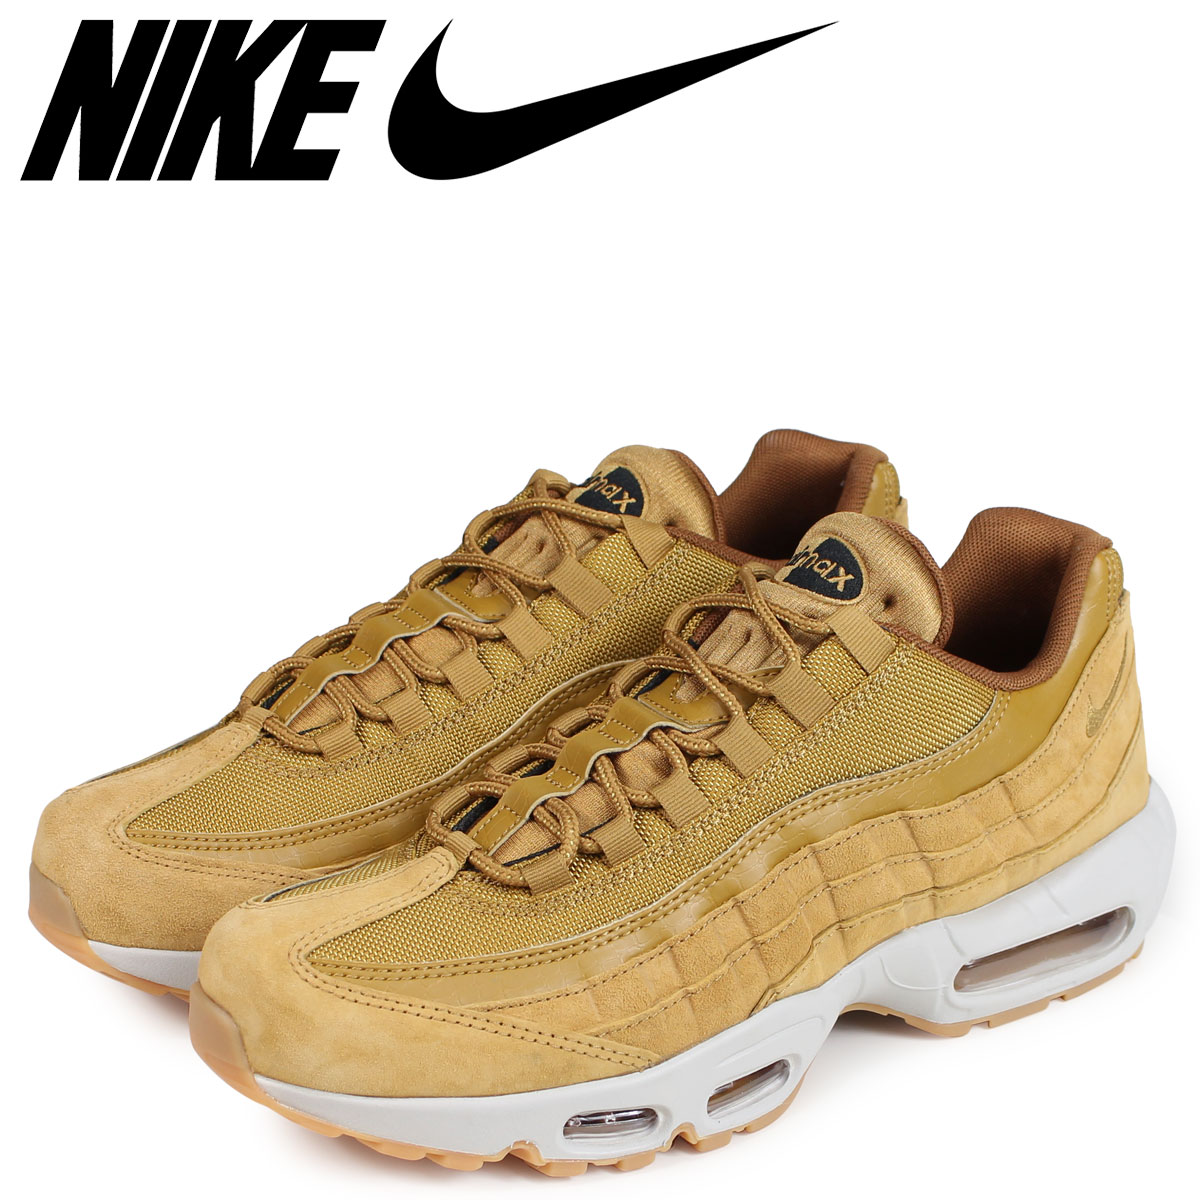 quality design 9db92 6781d  brand NIKE getting high popularity from sneakers freak